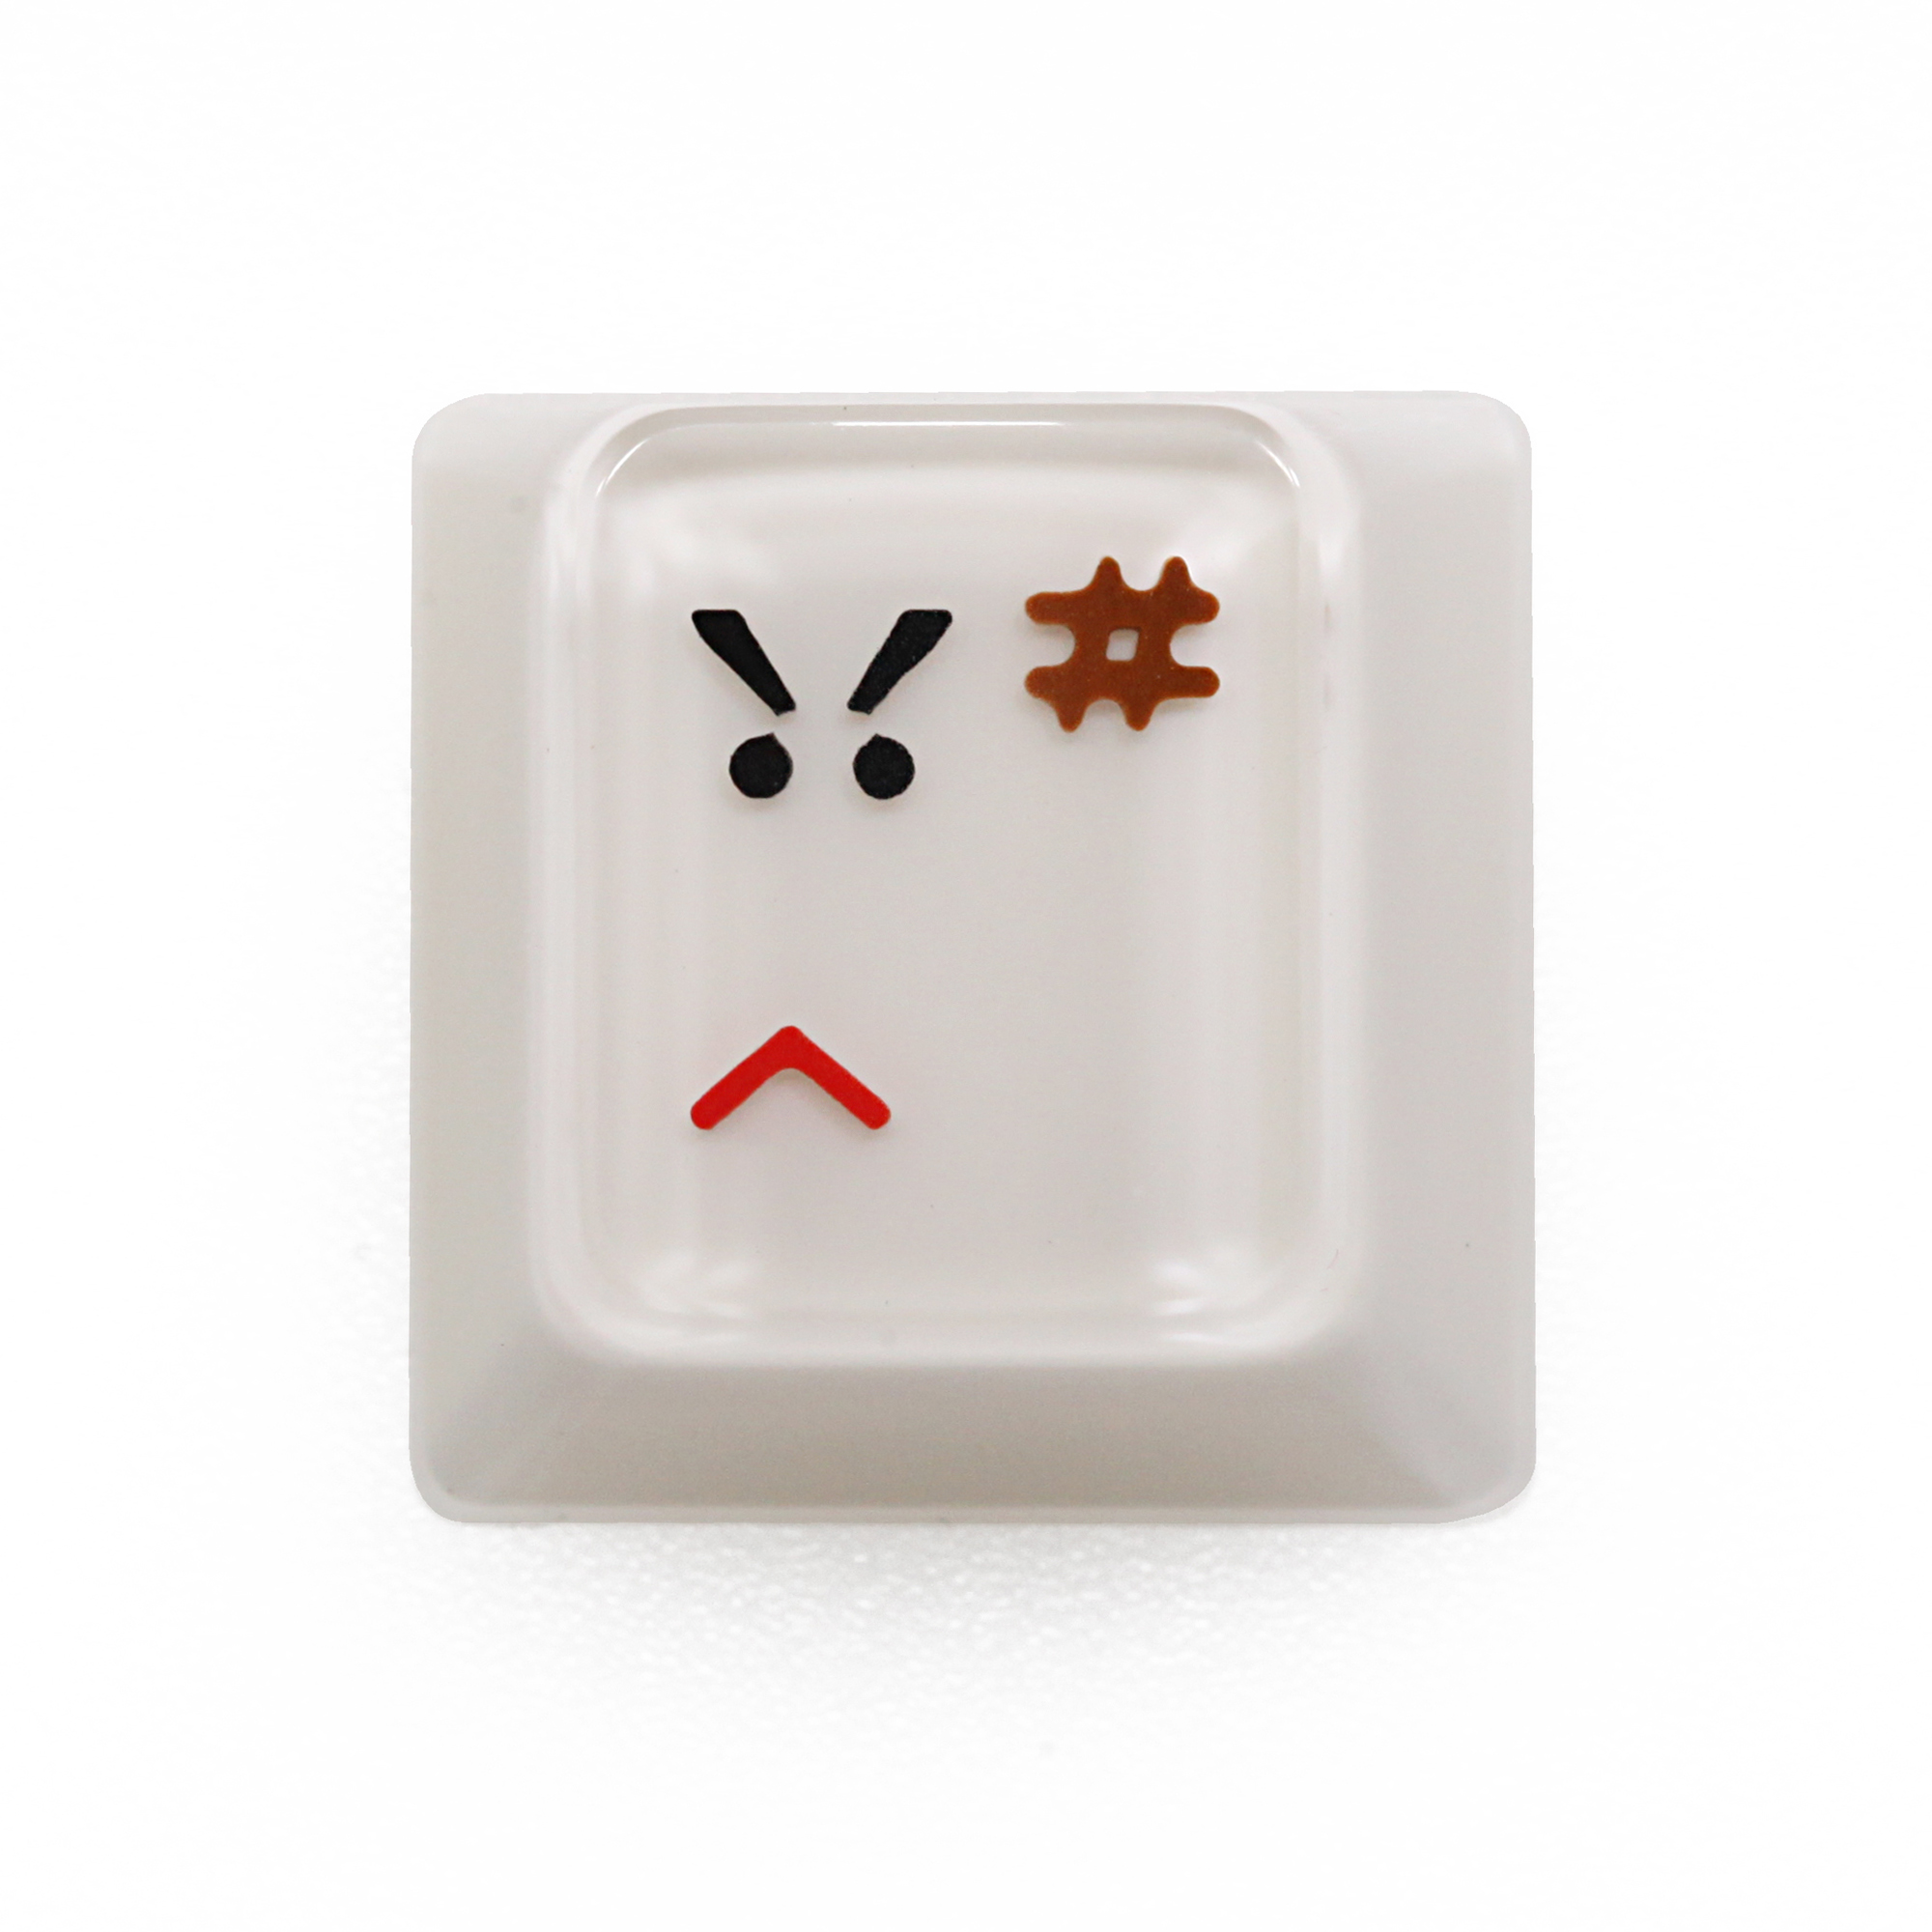 HAMMER Dr. Click ARTISAN KEYCAP Compatible With Cherry MX Switches And Clones Beige Grey Red Black Angry